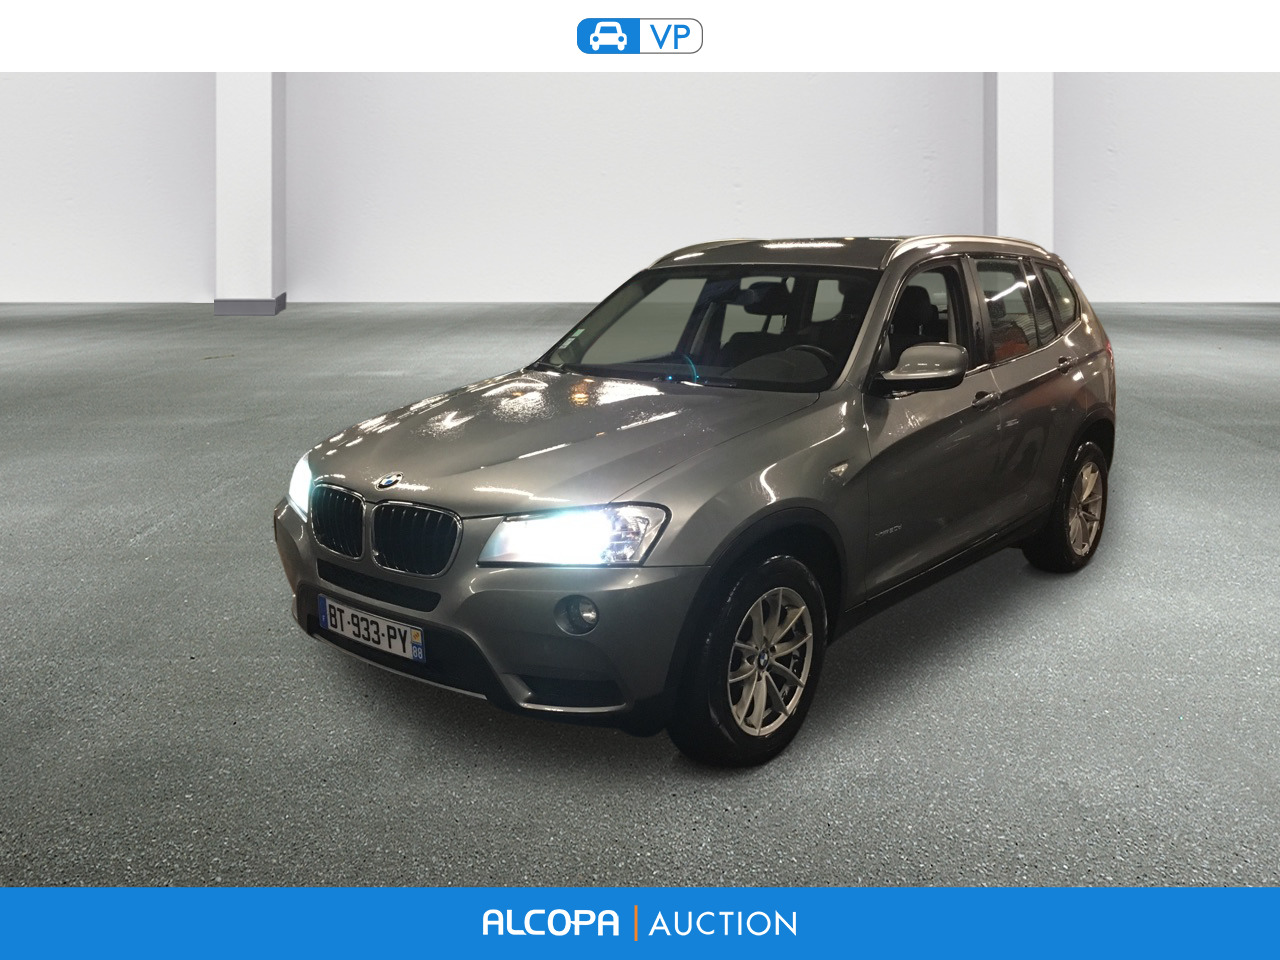 bmw x3 x3 xdrive20d 184ch confort nancy alcopa auction. Black Bedroom Furniture Sets. Home Design Ideas